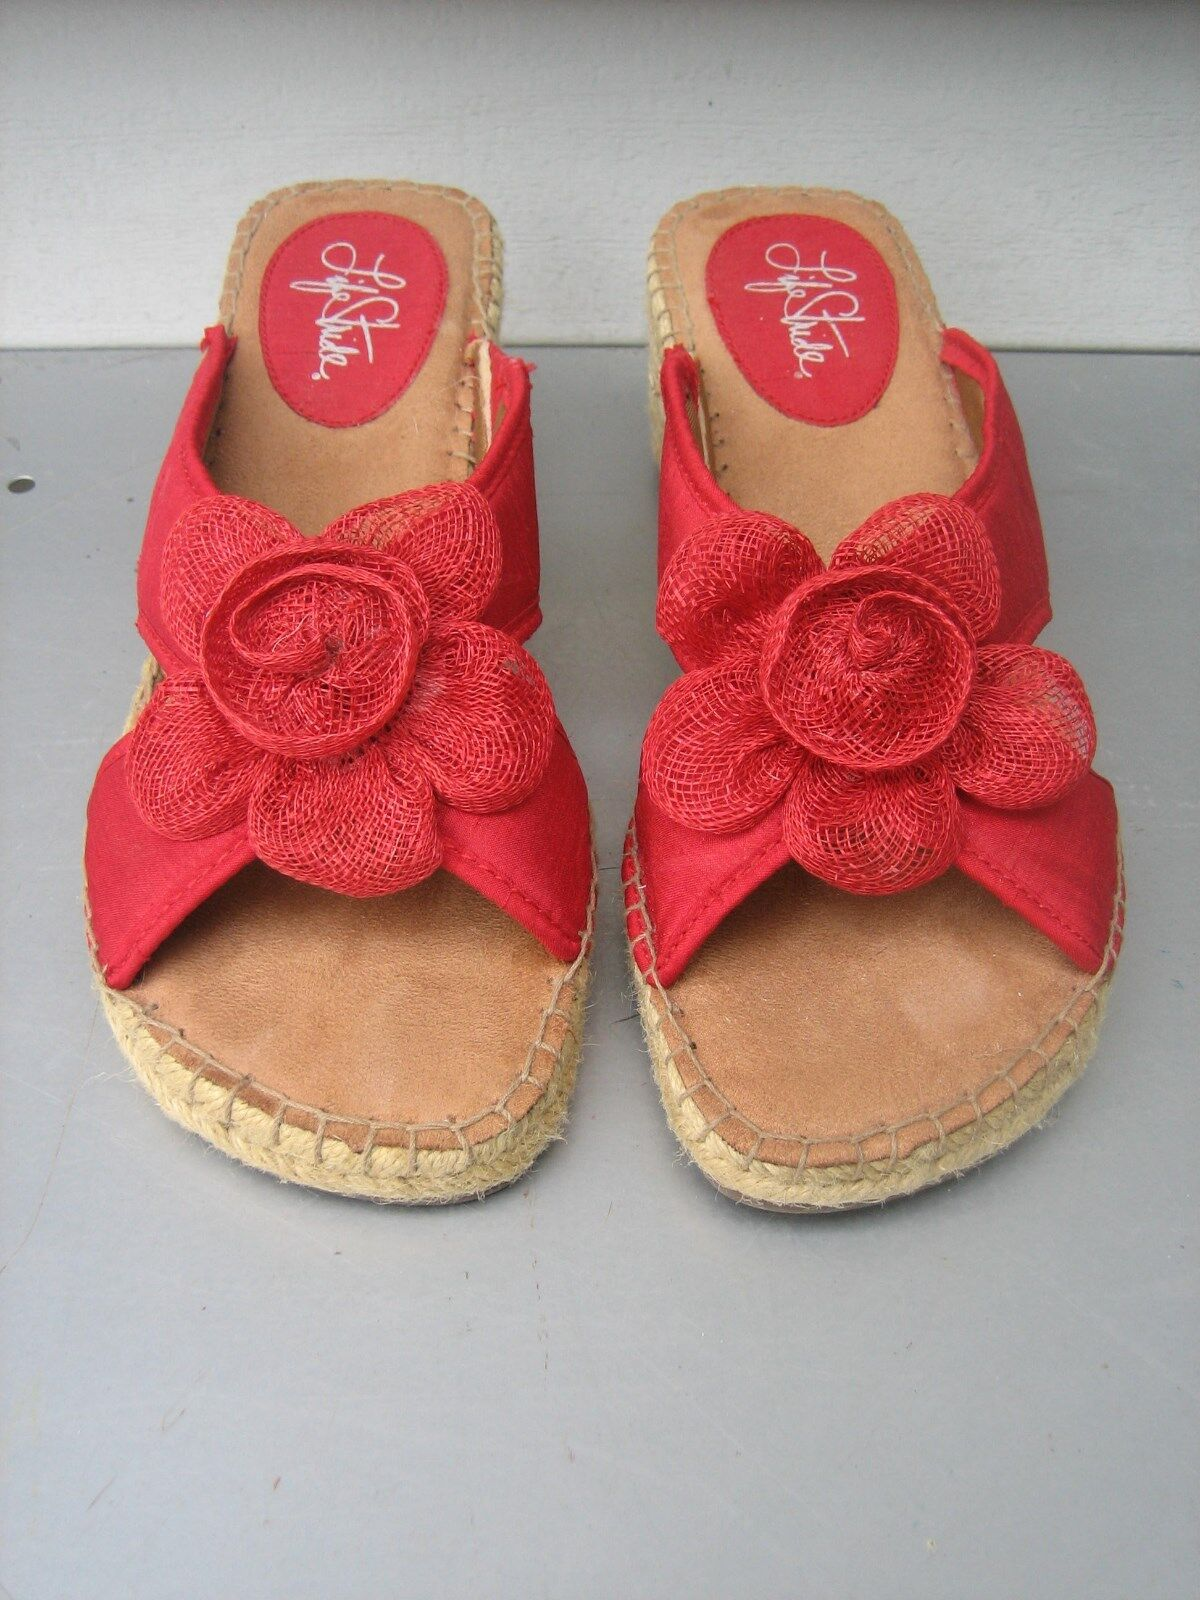 LIFE STRIDE BLOOM rouge REEF FLOWERS ESPADRILLA WEDGE SANDALS chaussures Taille 7 1 2M